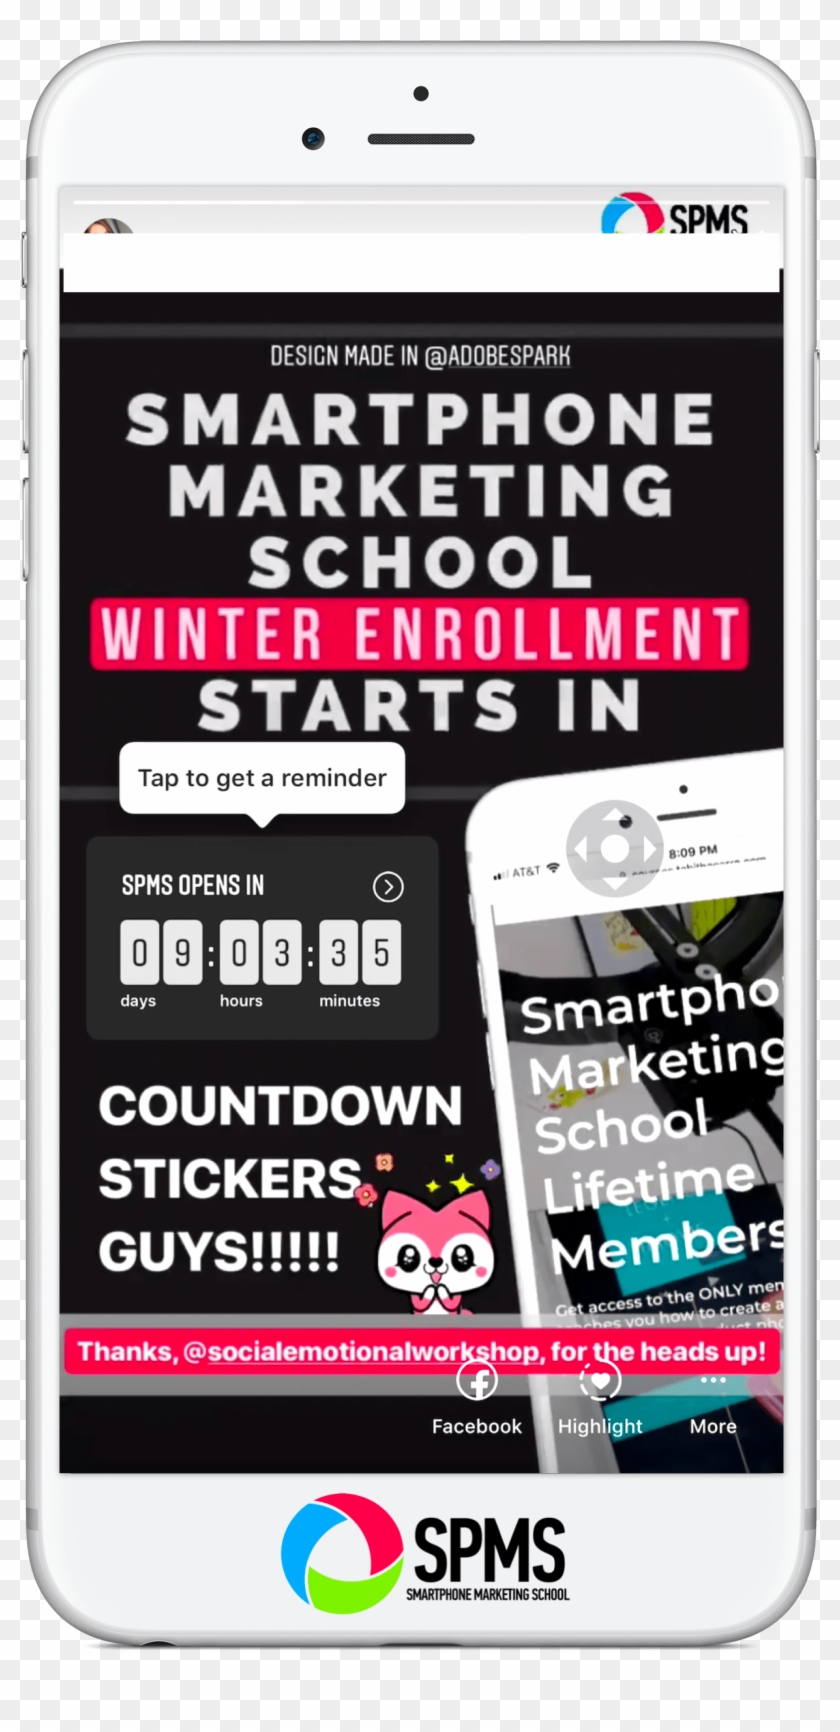 Market Your Launch With The Instagram Stories Countdown - Instagram Stories Countdown Gif Clipart #3681030